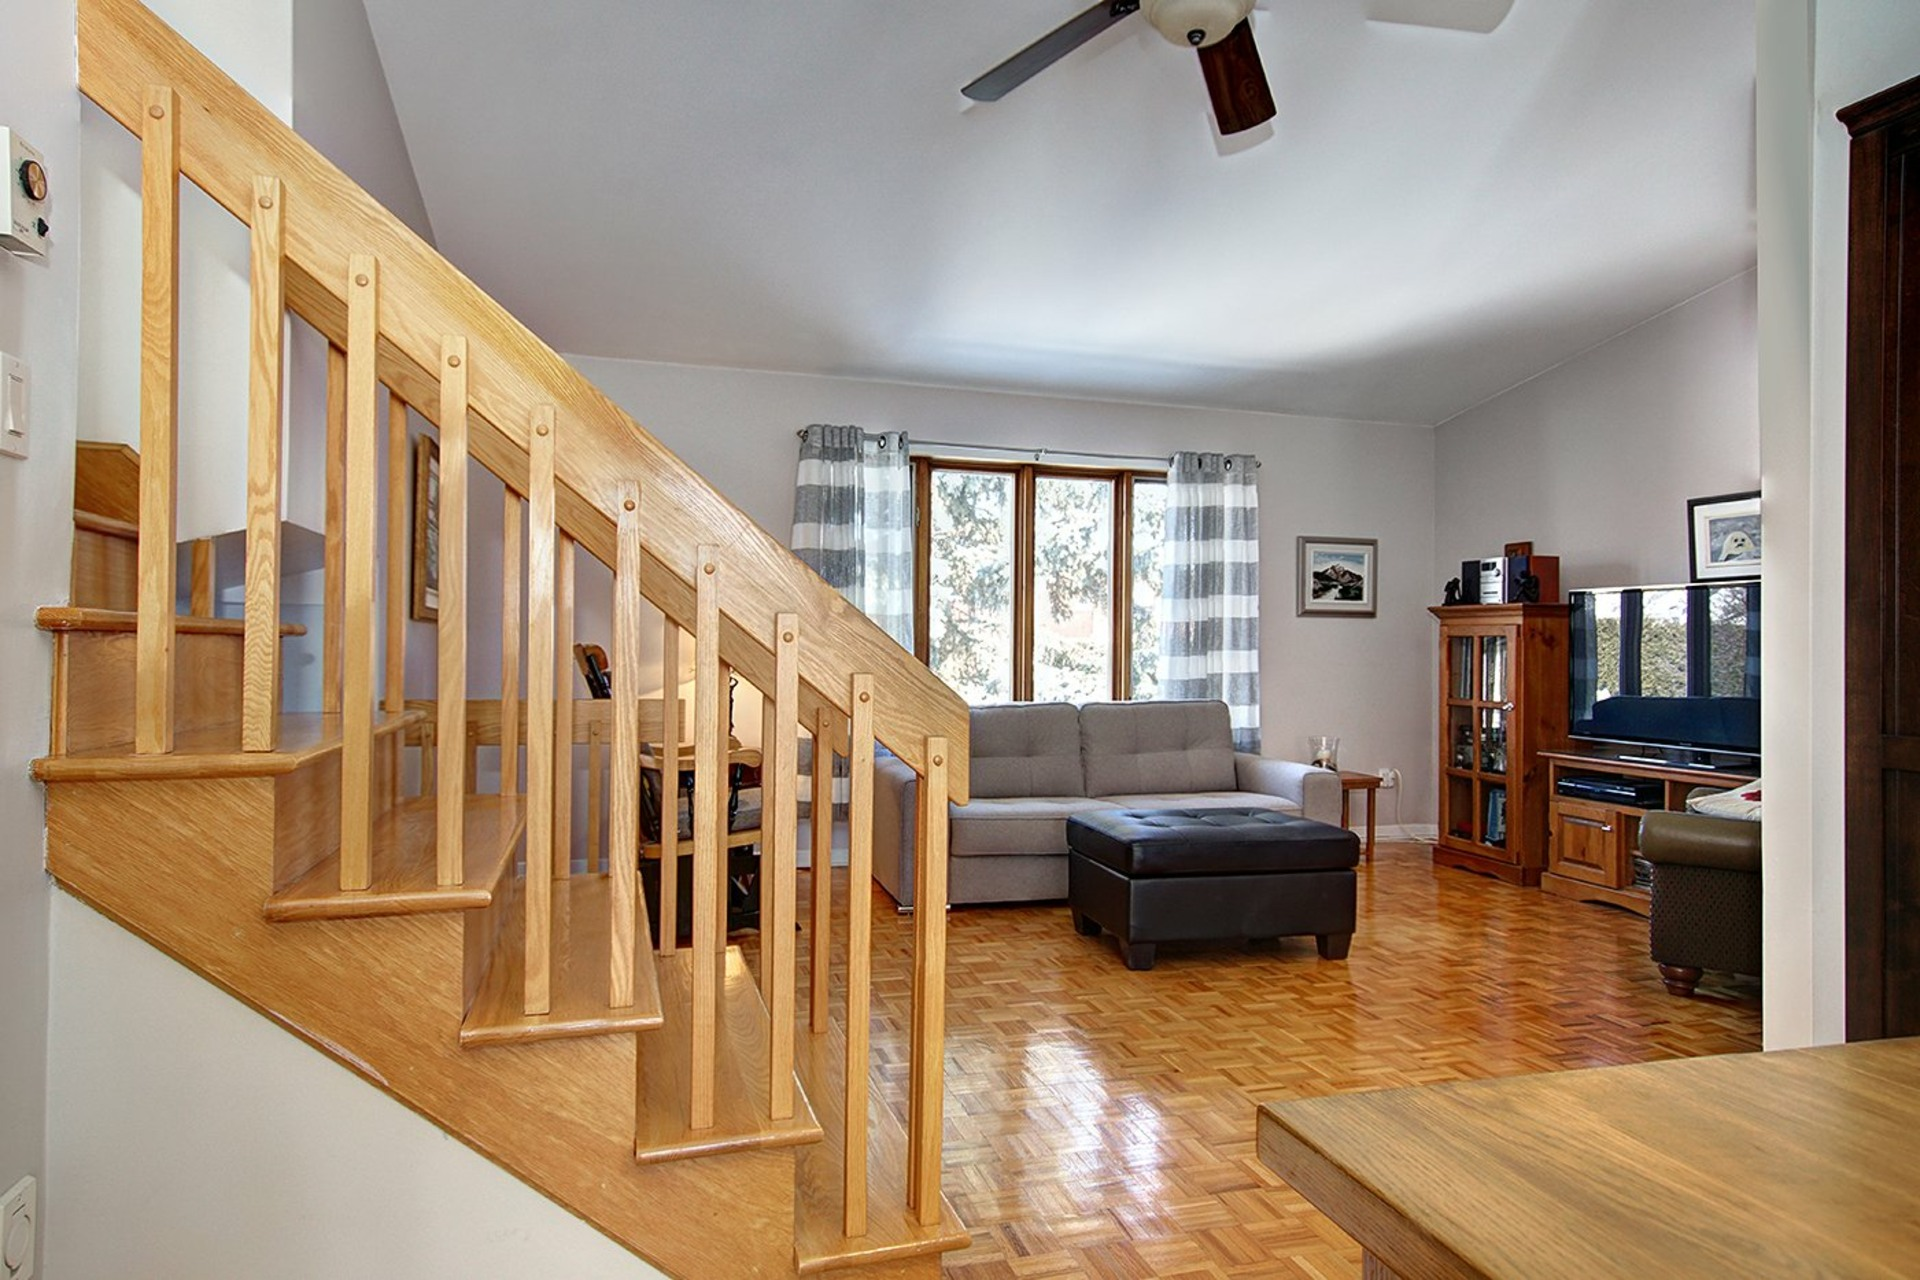 image 6 - House For sale Repentigny Repentigny  - 10 rooms